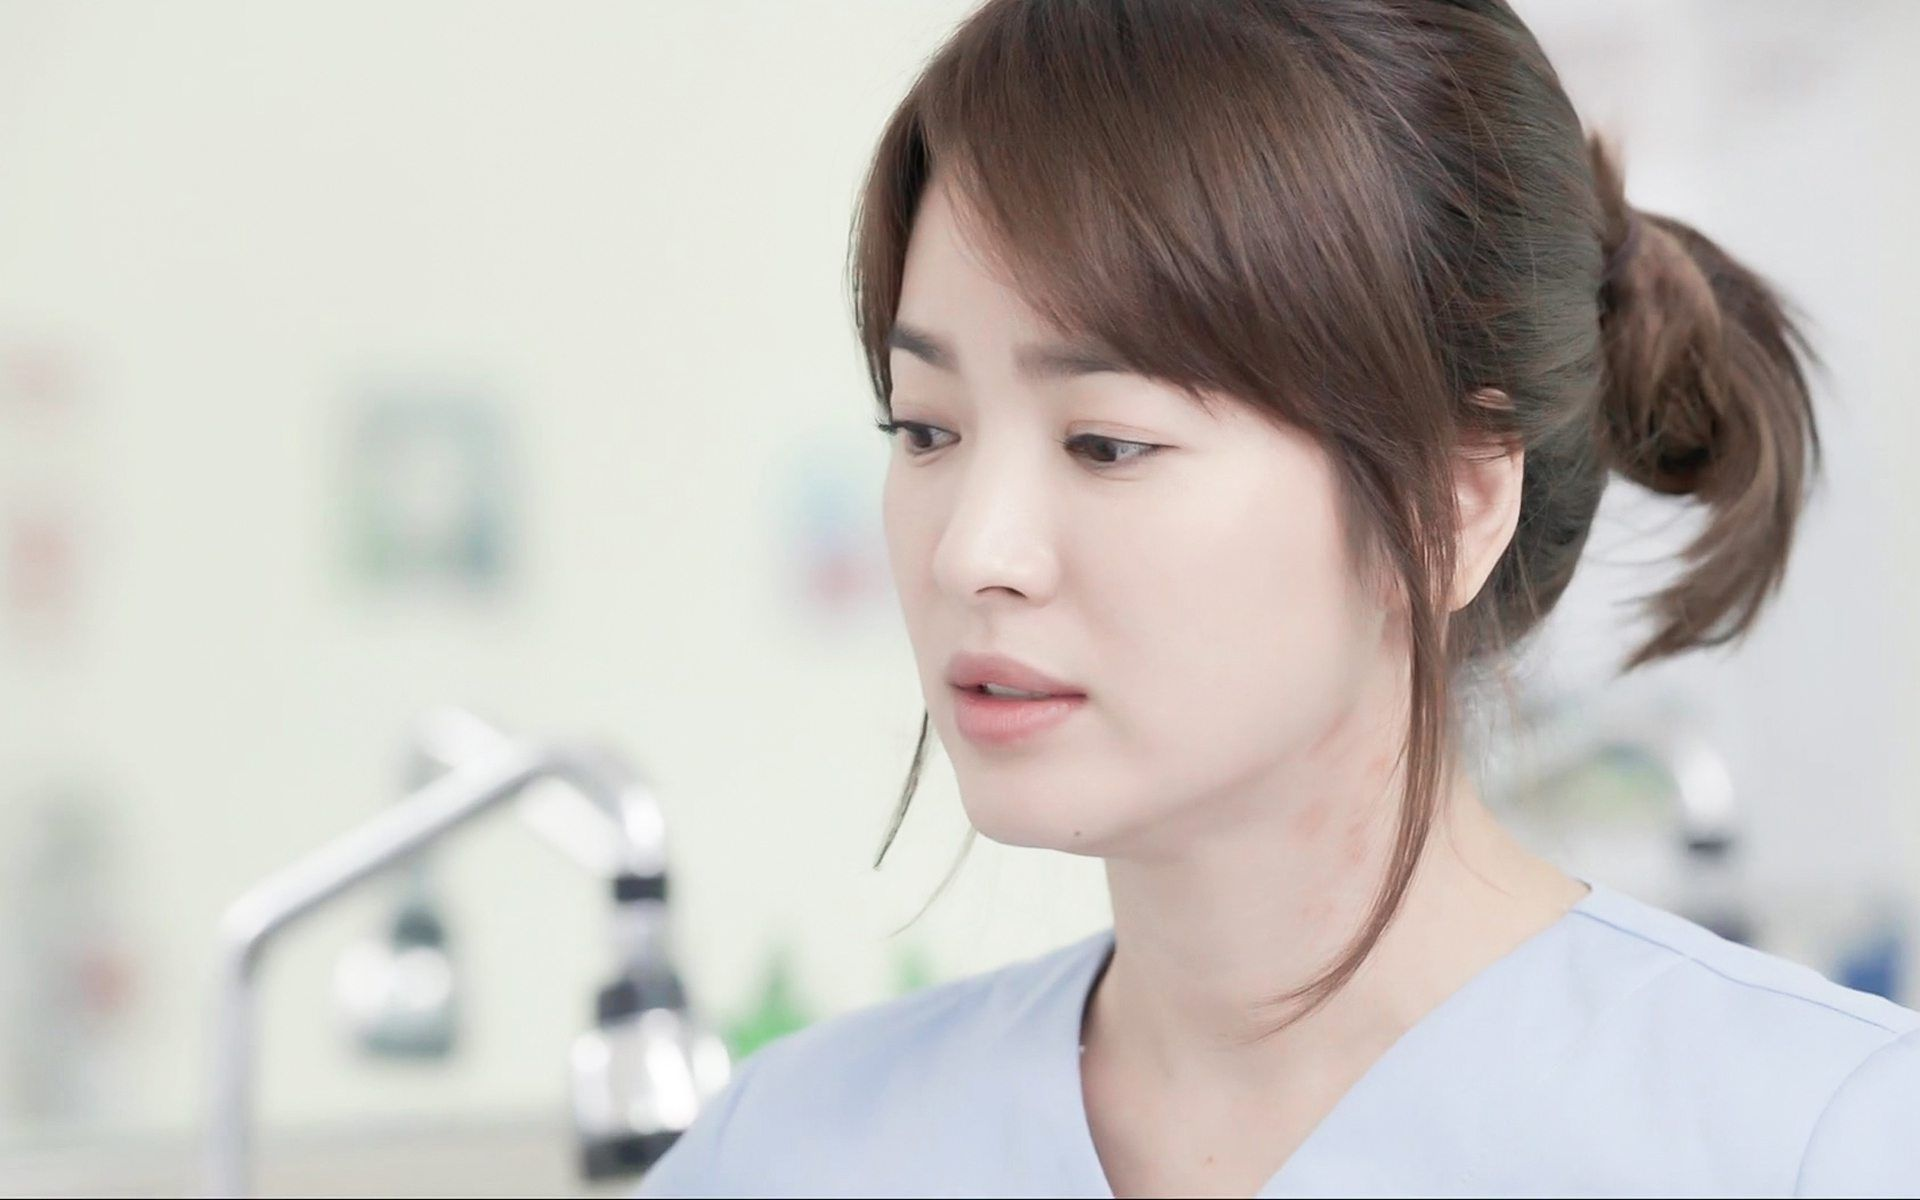 Song Hye Kyo Spotted Rocking A Fresh New Hairstyle Koreaboo